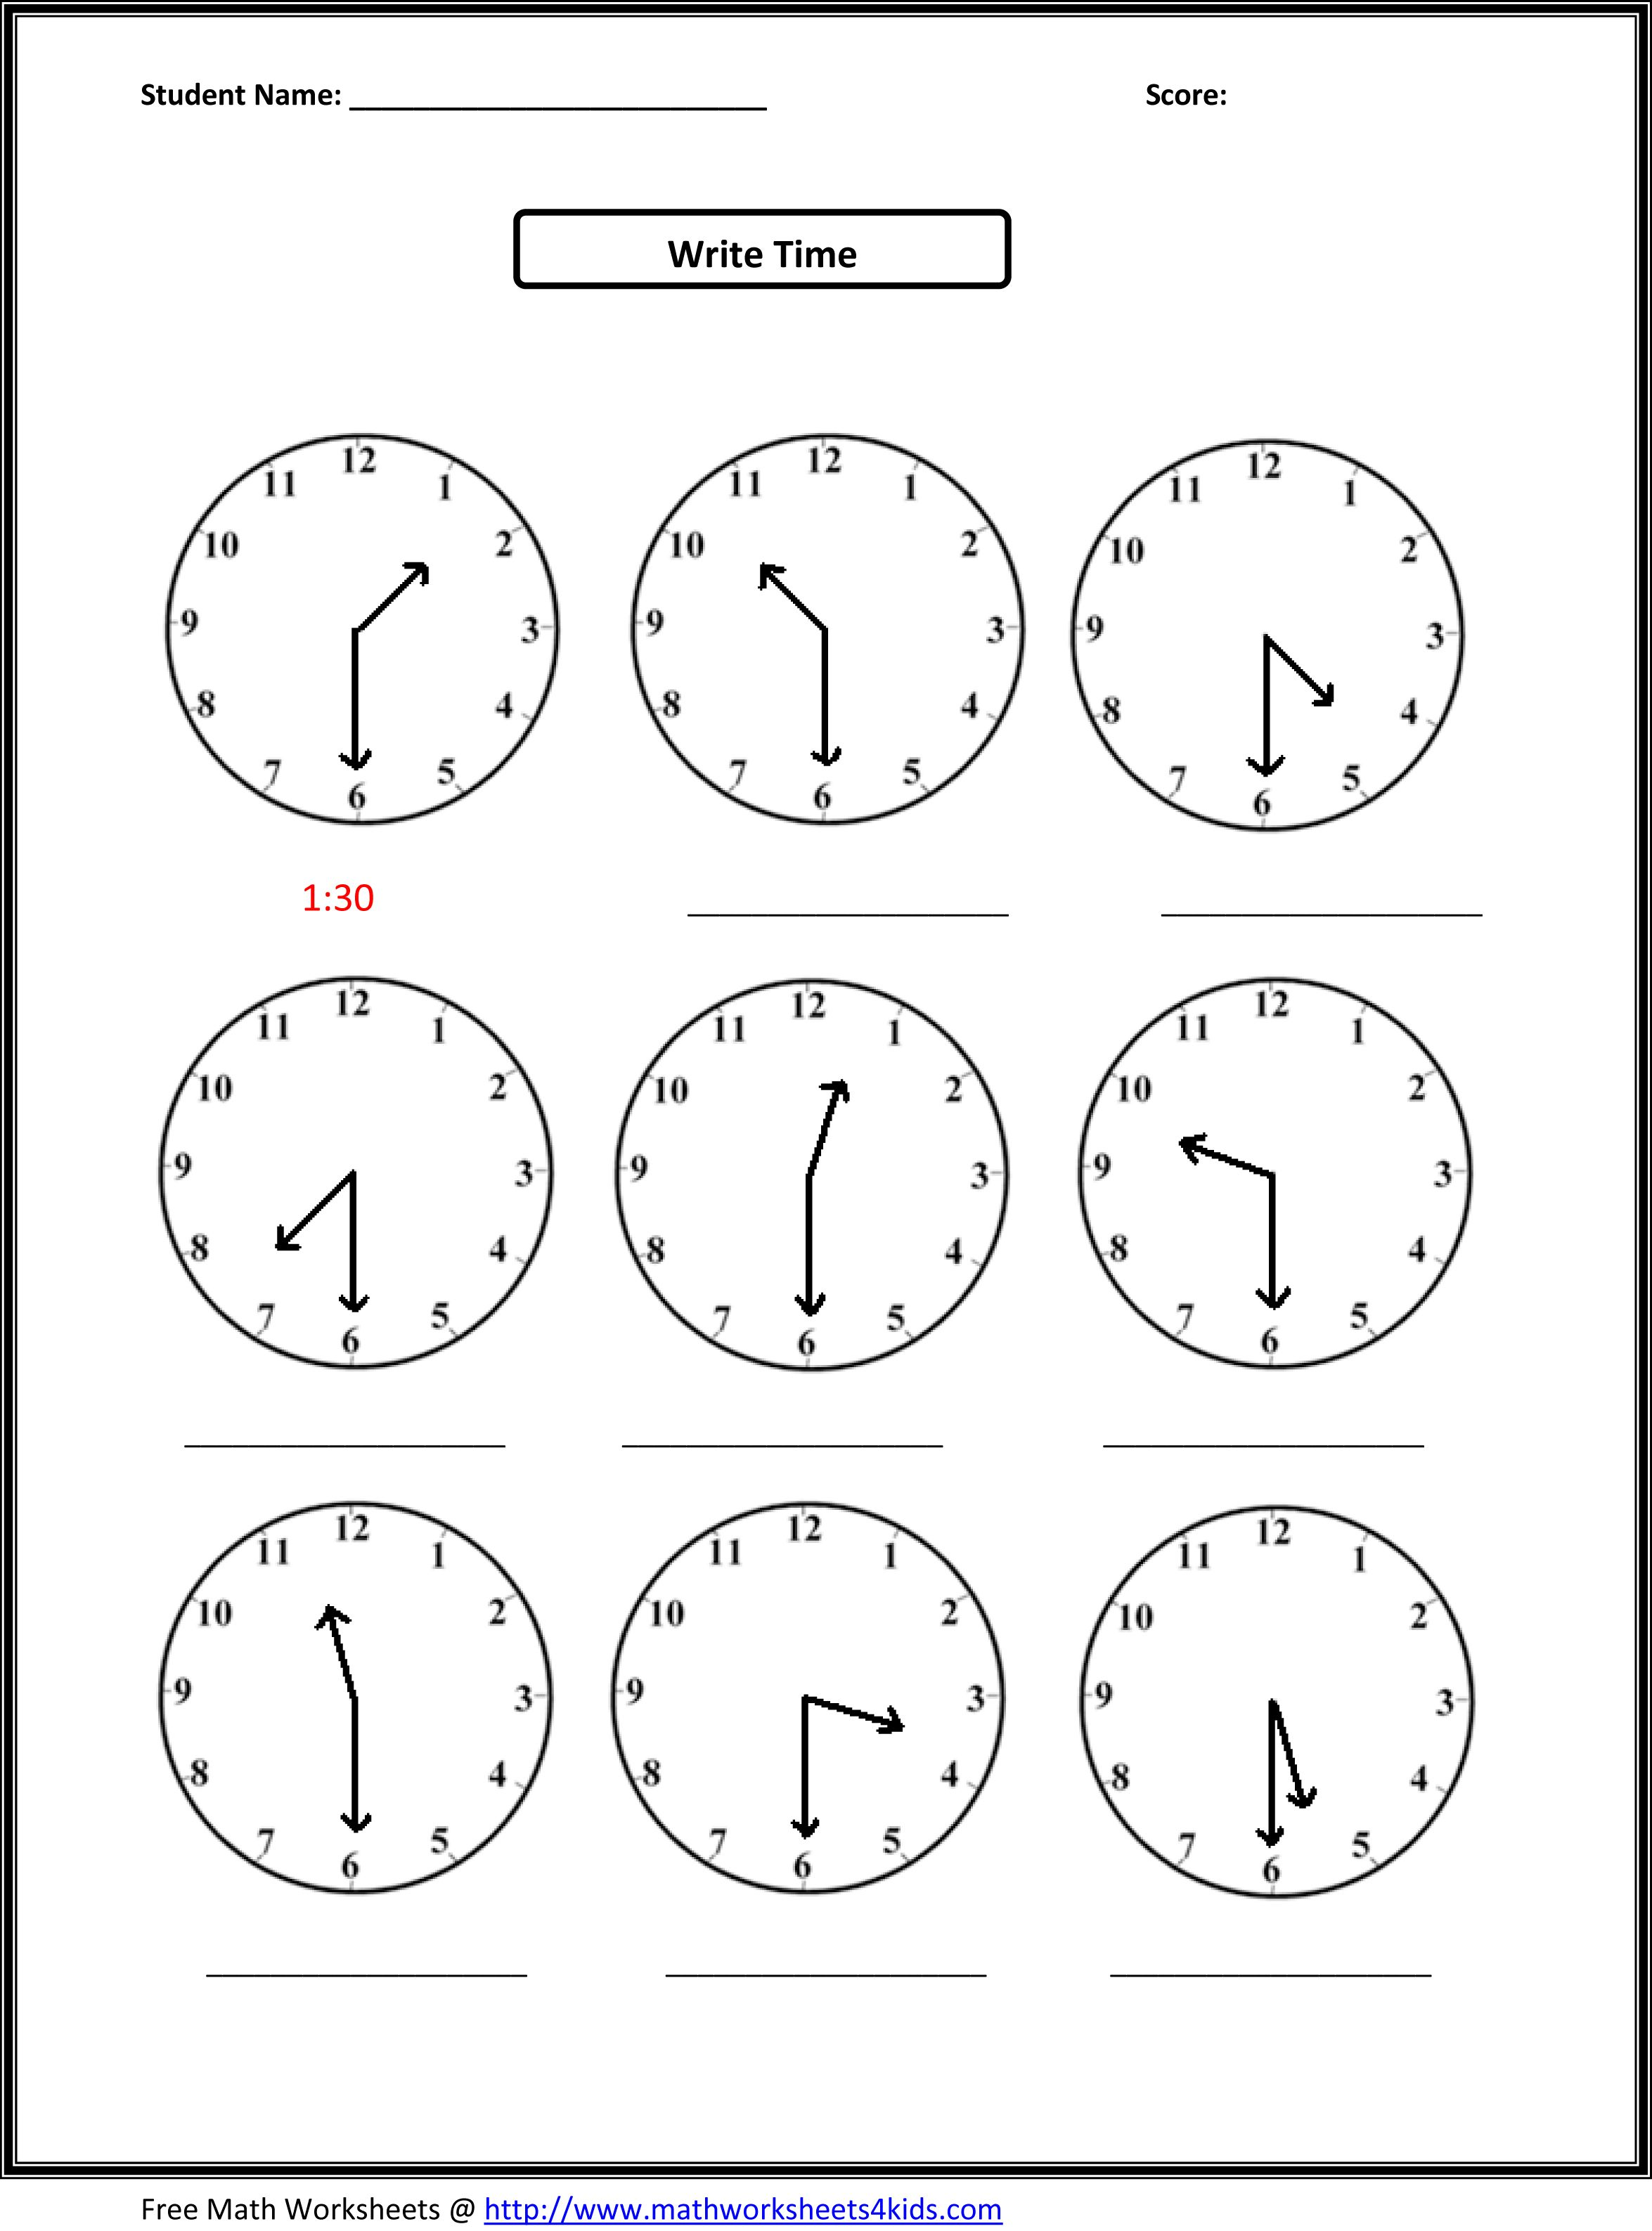 Proatmealus  Marvelous Worksheet On Time For Grade   Reocurent With Fascinating Free Printable Telling Time Worksheets Nd Grade  Reocurent With Alluring Abc Worksheet For Preschool Also Th Grade Rounding Worksheets In Addition Th Grade Fraction Worksheets And Area And Perimeter Rd Grade Worksheets As Well As Indirect Measurement Worksheets Additionally Seed Worksheet From Reocurentcom With Proatmealus  Fascinating Worksheet On Time For Grade   Reocurent With Alluring Free Printable Telling Time Worksheets Nd Grade  Reocurent And Marvelous Abc Worksheet For Preschool Also Th Grade Rounding Worksheets In Addition Th Grade Fraction Worksheets From Reocurentcom